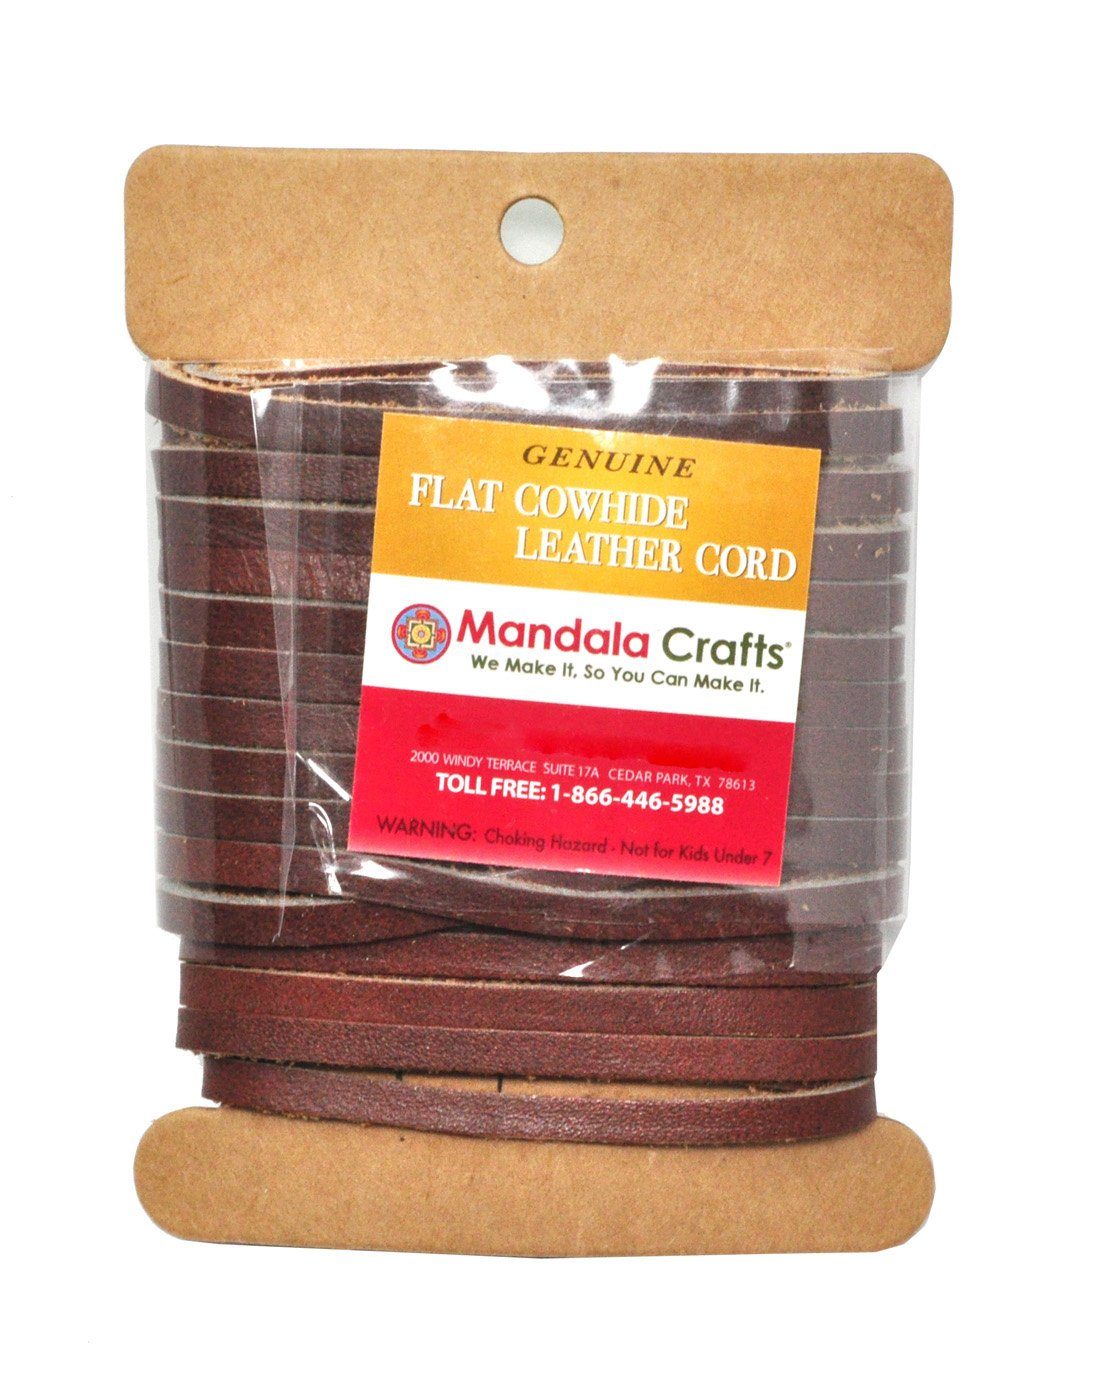 Mandala Crafts Flat Cowhide Genuine Leather String Cord Lace Shoelaces and Saddles Baseball Gloves Rawhide Strip for Jewelry Making Clothing 2mm,8.75 Yards, Light Brown